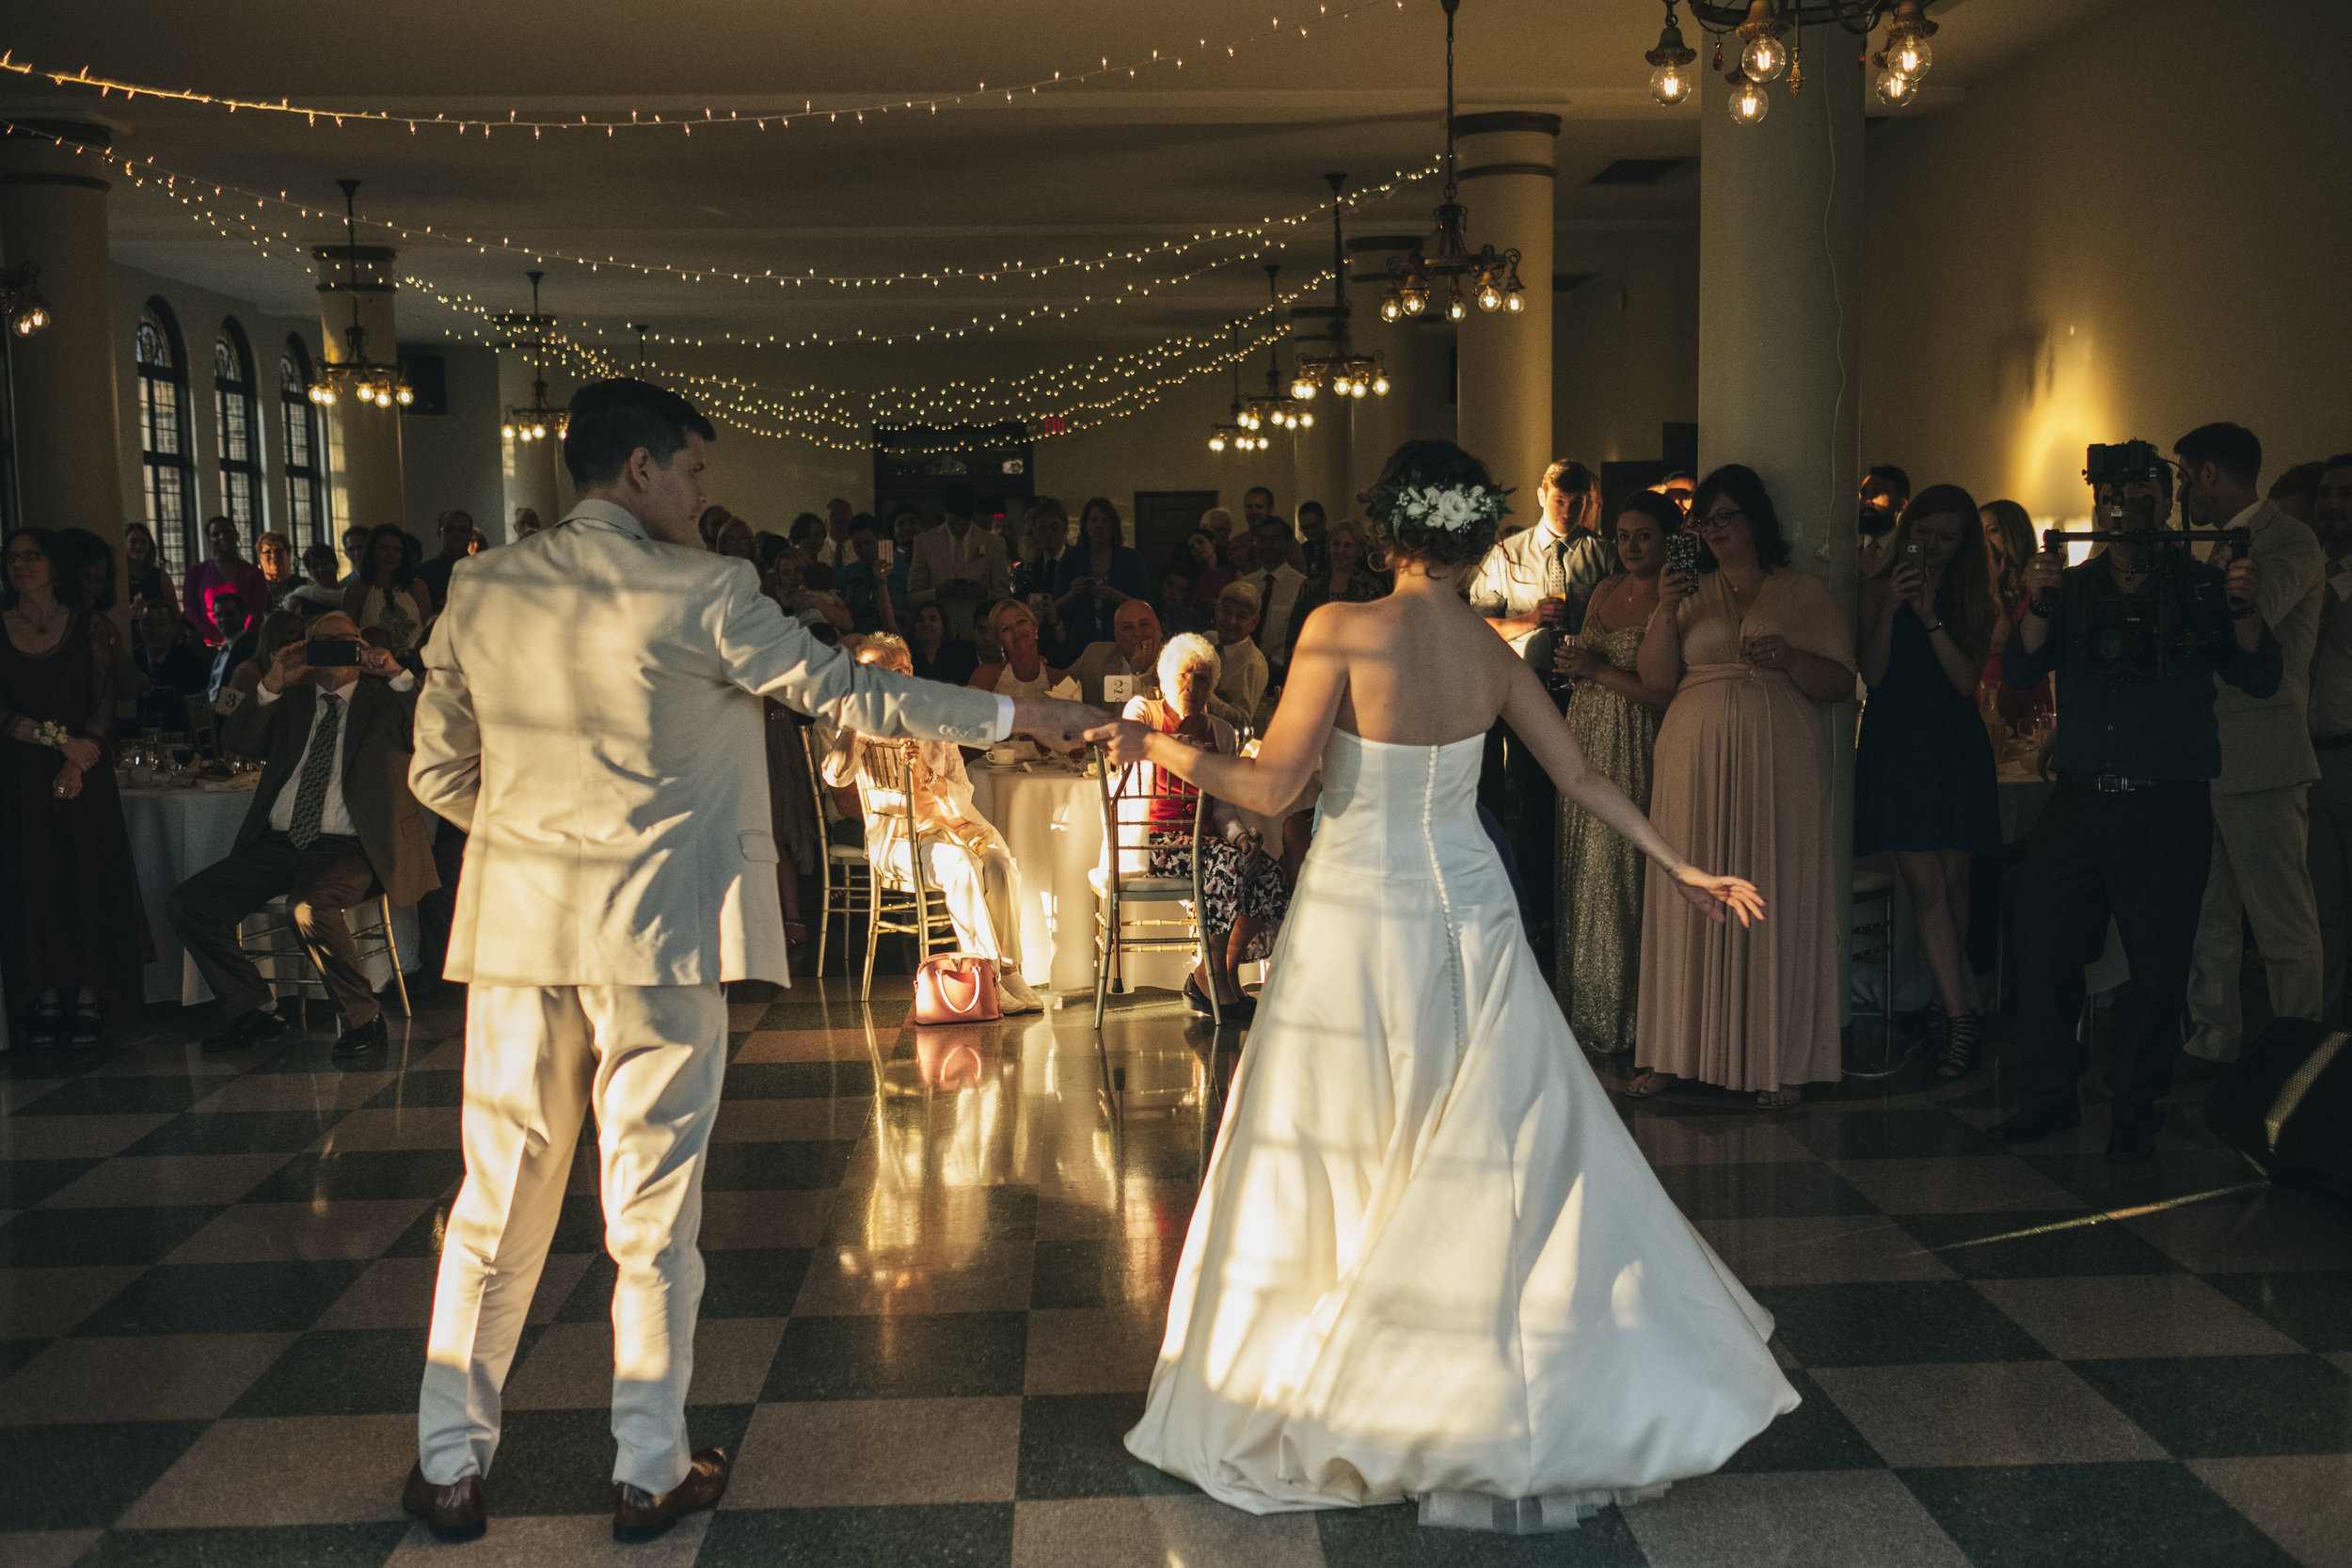 Bride and groom during their first dance as husband and wife at Nazareth Hall wedding.